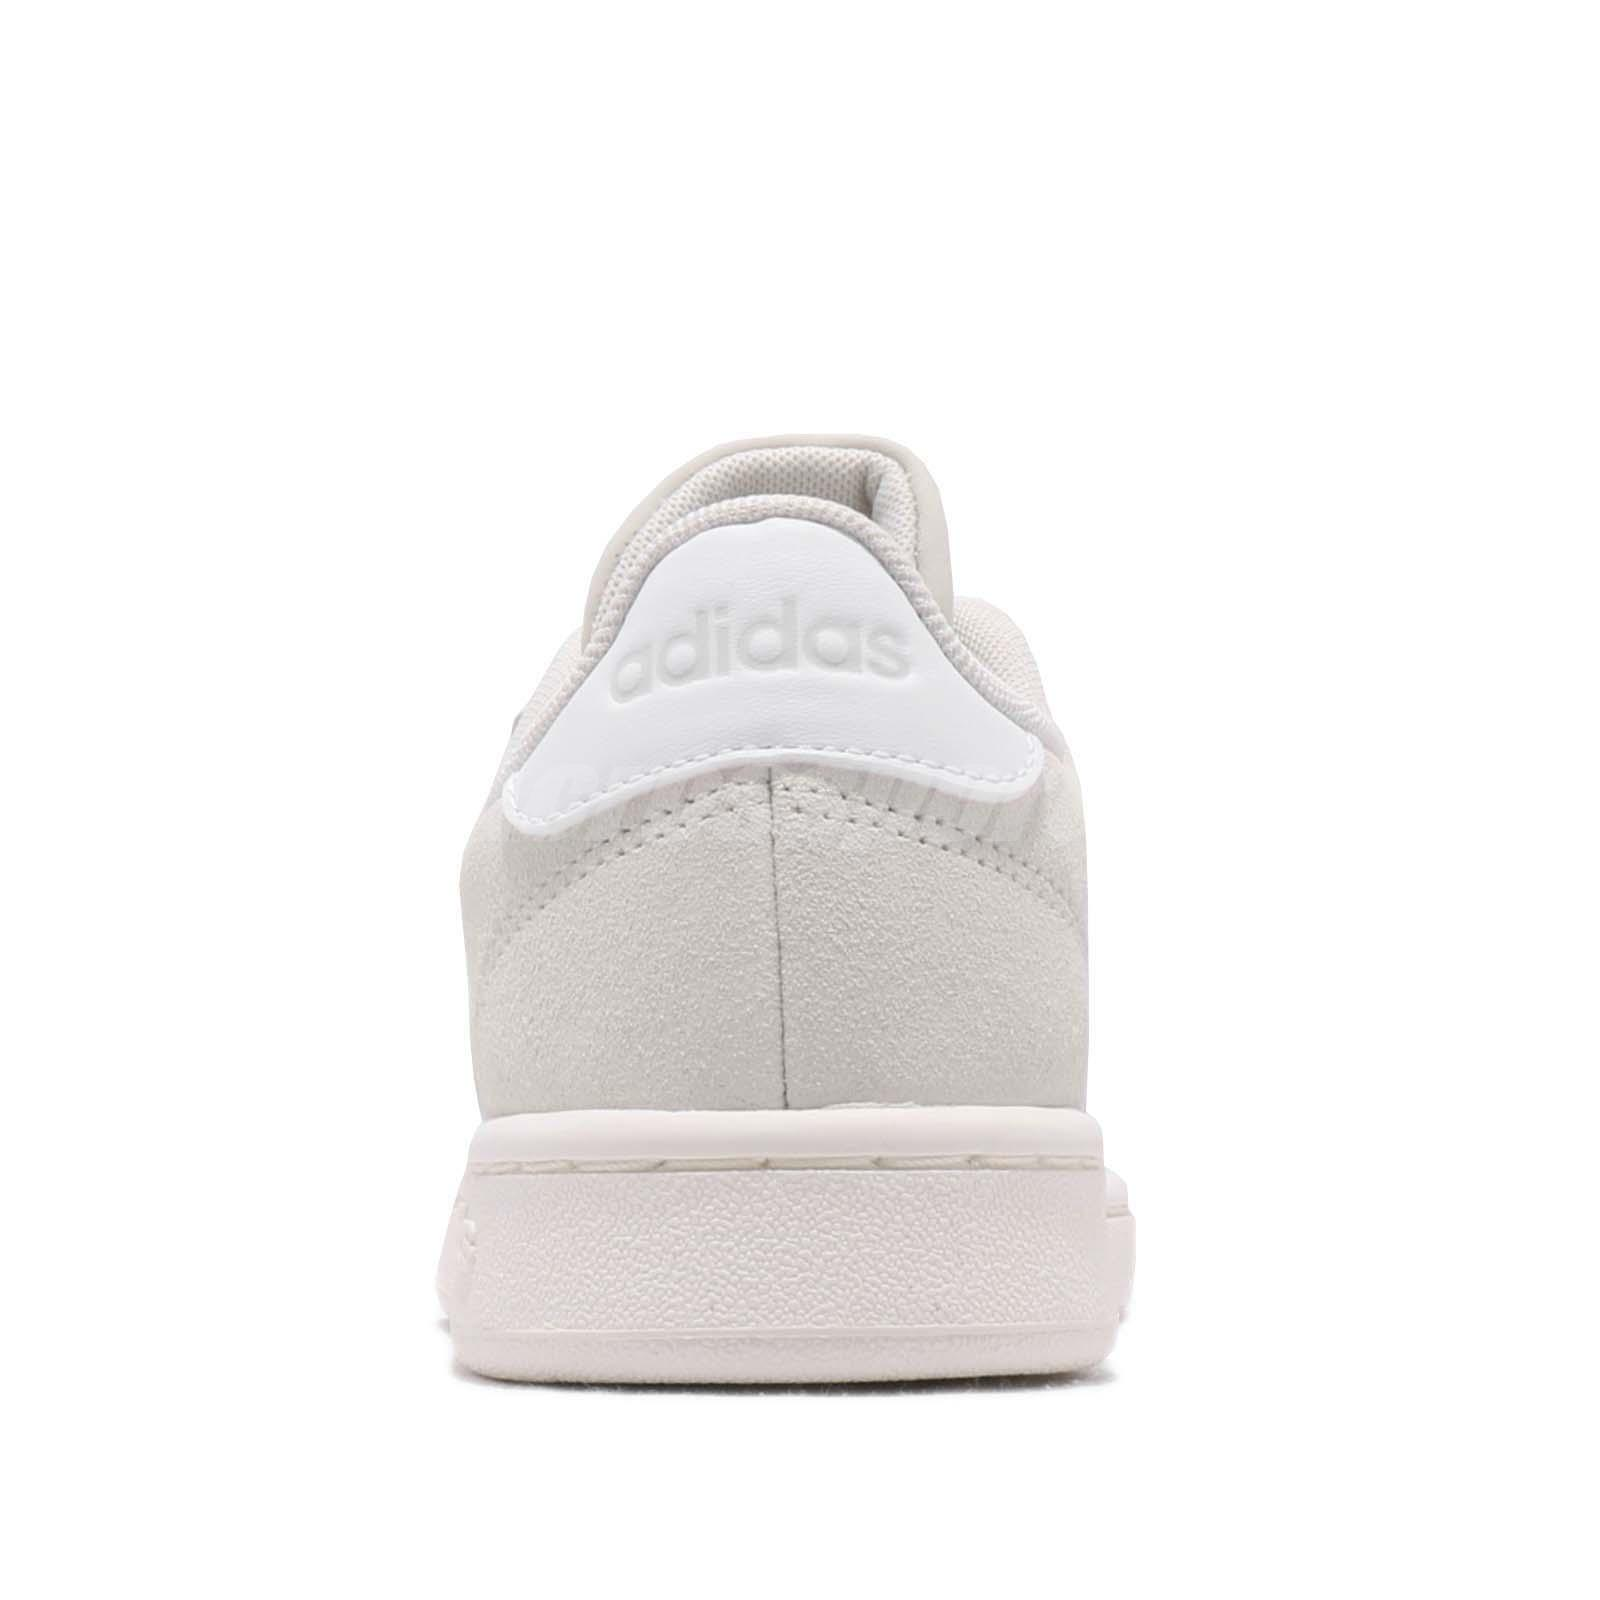 b9ff33145726 Details about adidas Grand Court Raw White Women Classic Casual Lifestyle  Shoes Sneaker F36497